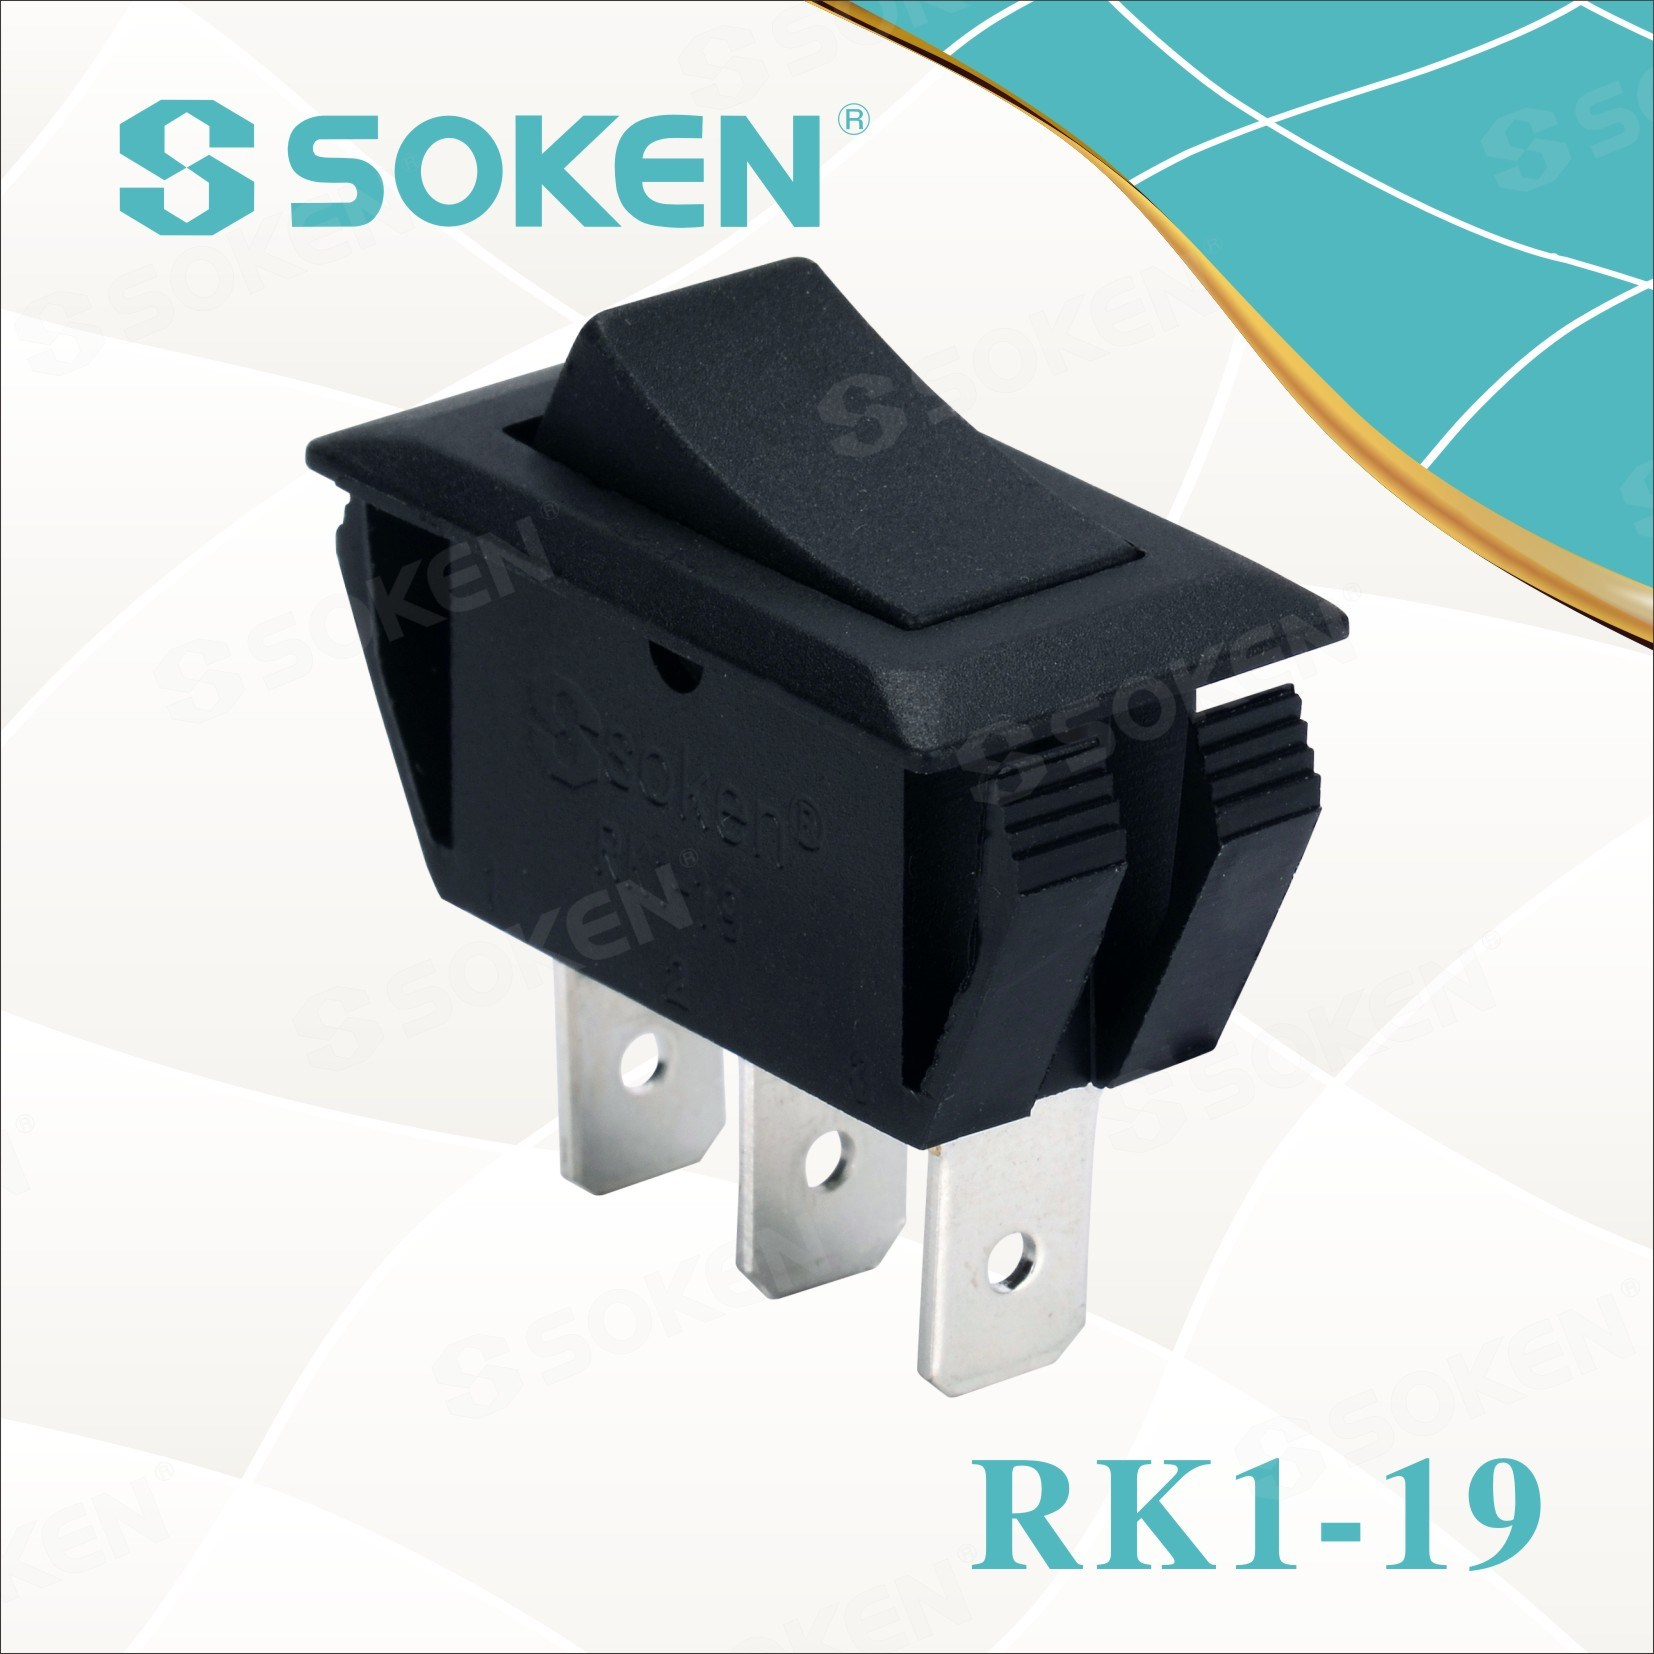 Soken Rk1-19 1X2 air air Rocker Switch